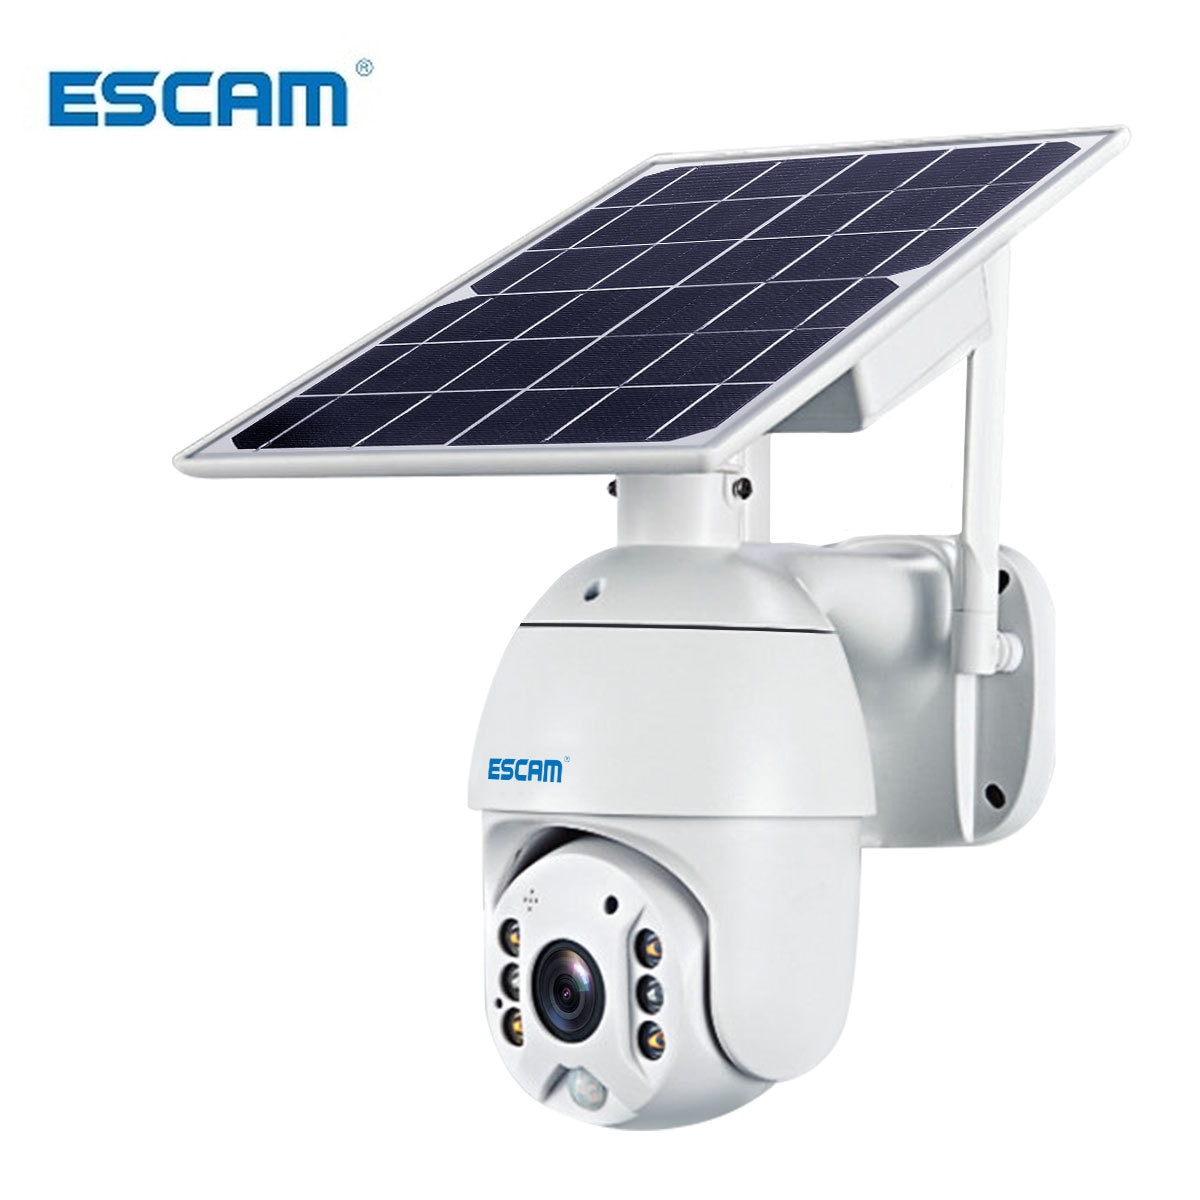 ESCAM QF280 1080P Cloud Storage PT WIFI Battery PIR Alarm IP Camera With Solar Panel Night Vision Two Way IP66 Waterproof